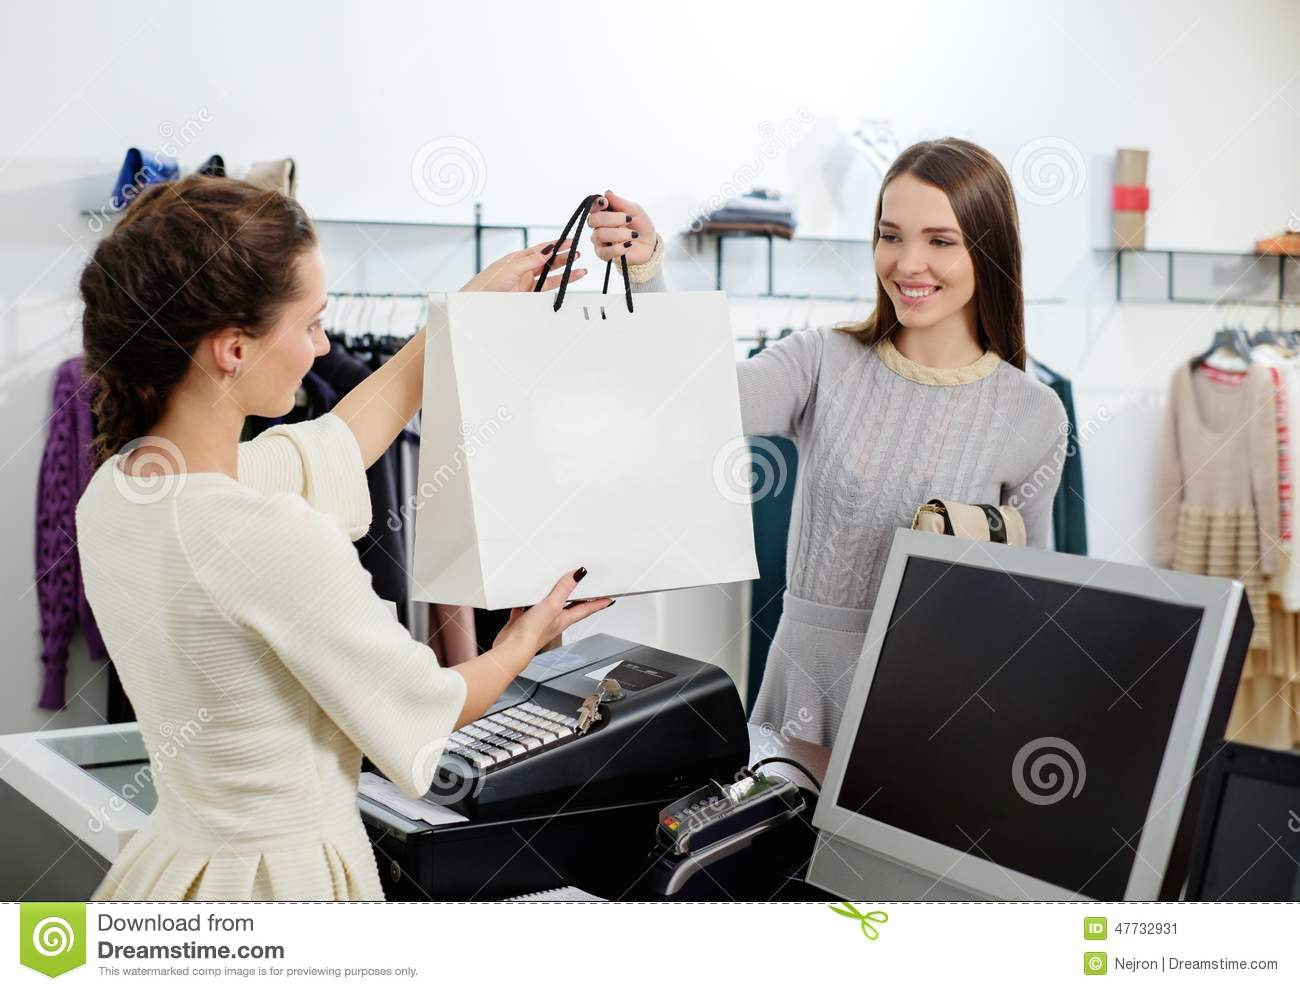 Woman And Shop Assistant In A Showroom Stock Photo - Image: 47732931